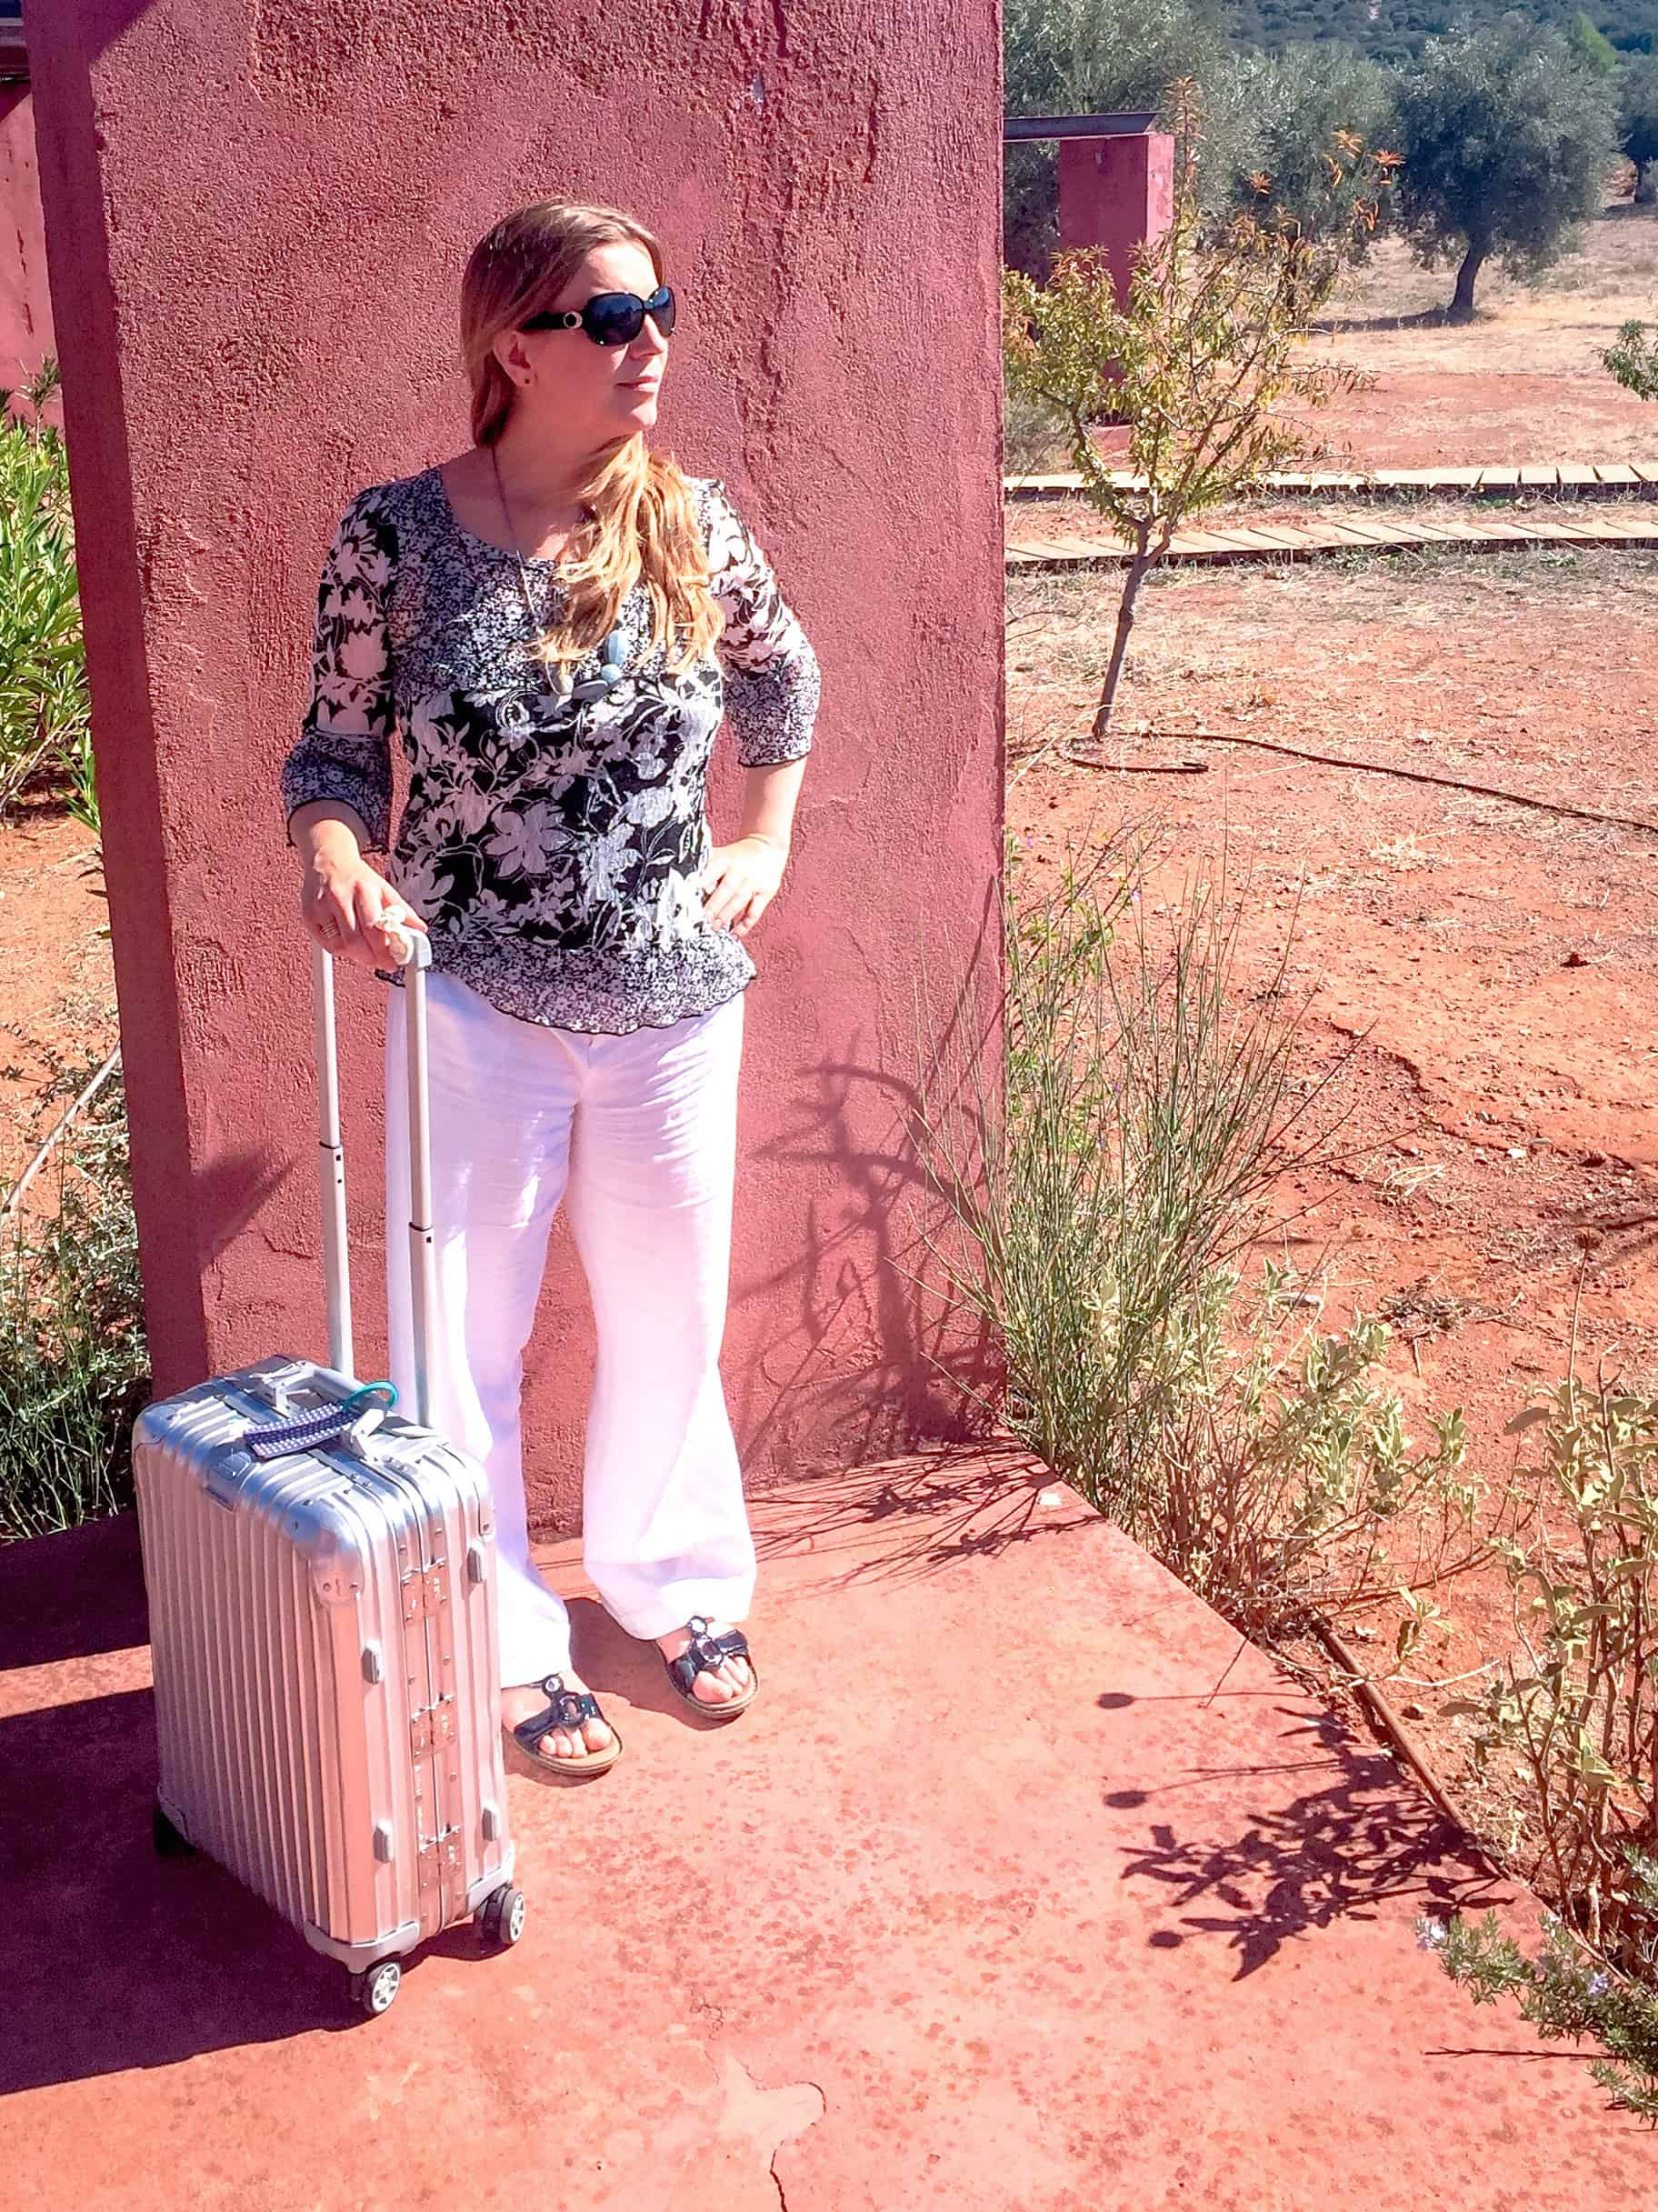 Abigail King with Rimowa suitcase for cabin luggage